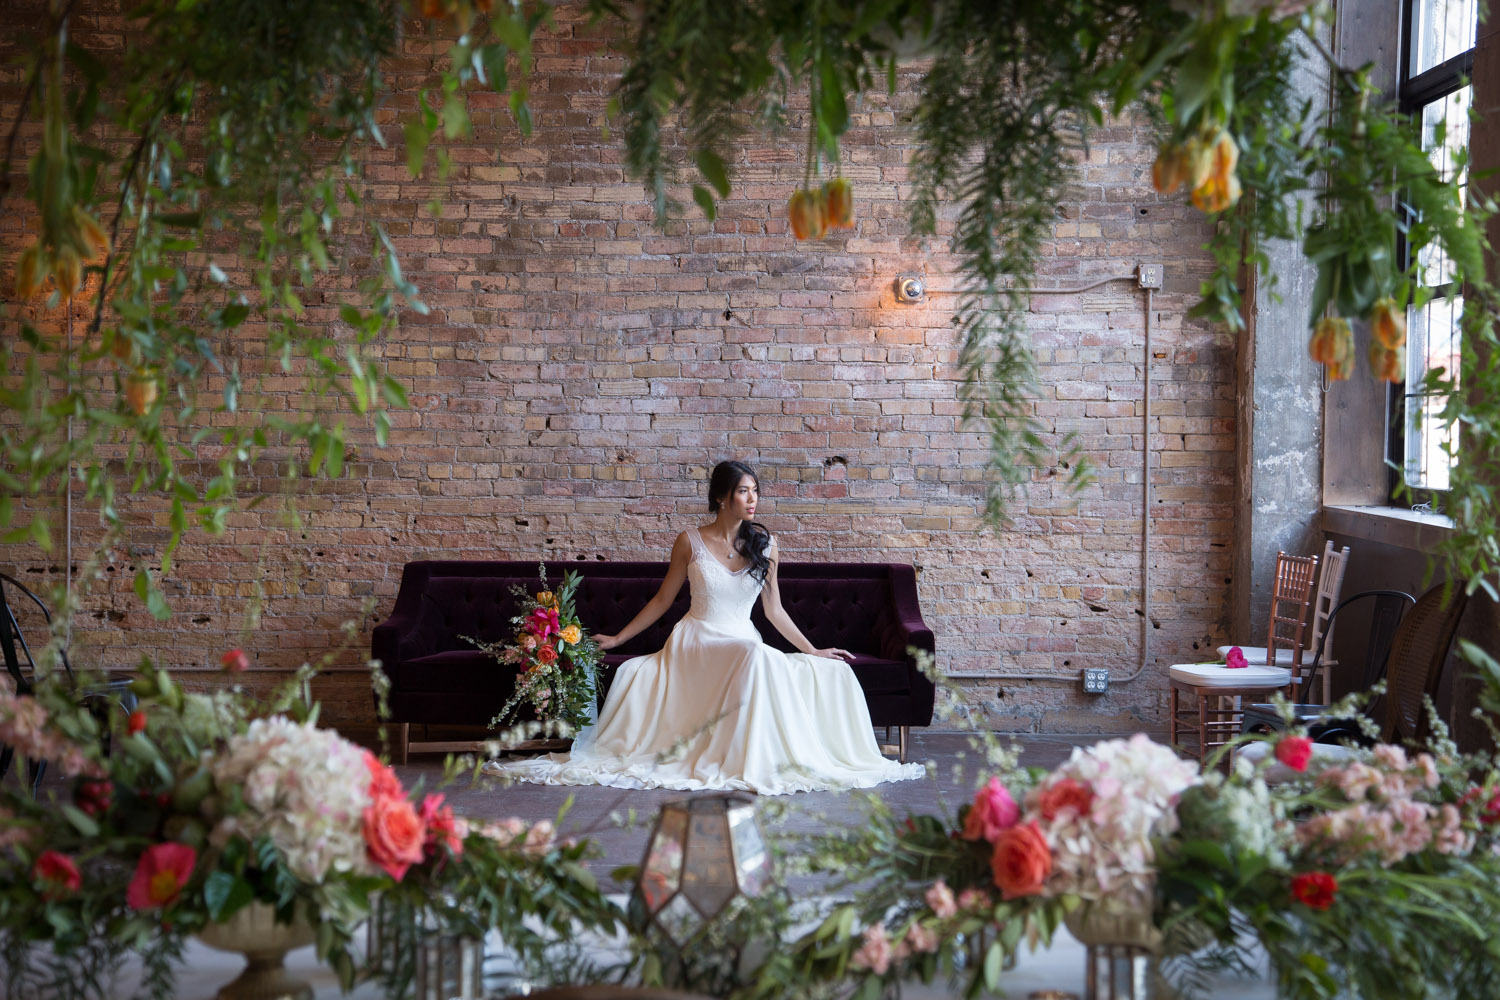 16-bride-floral-brick-wall-loring-social-minneapolis-minnesota-mahonen-photography.jpg